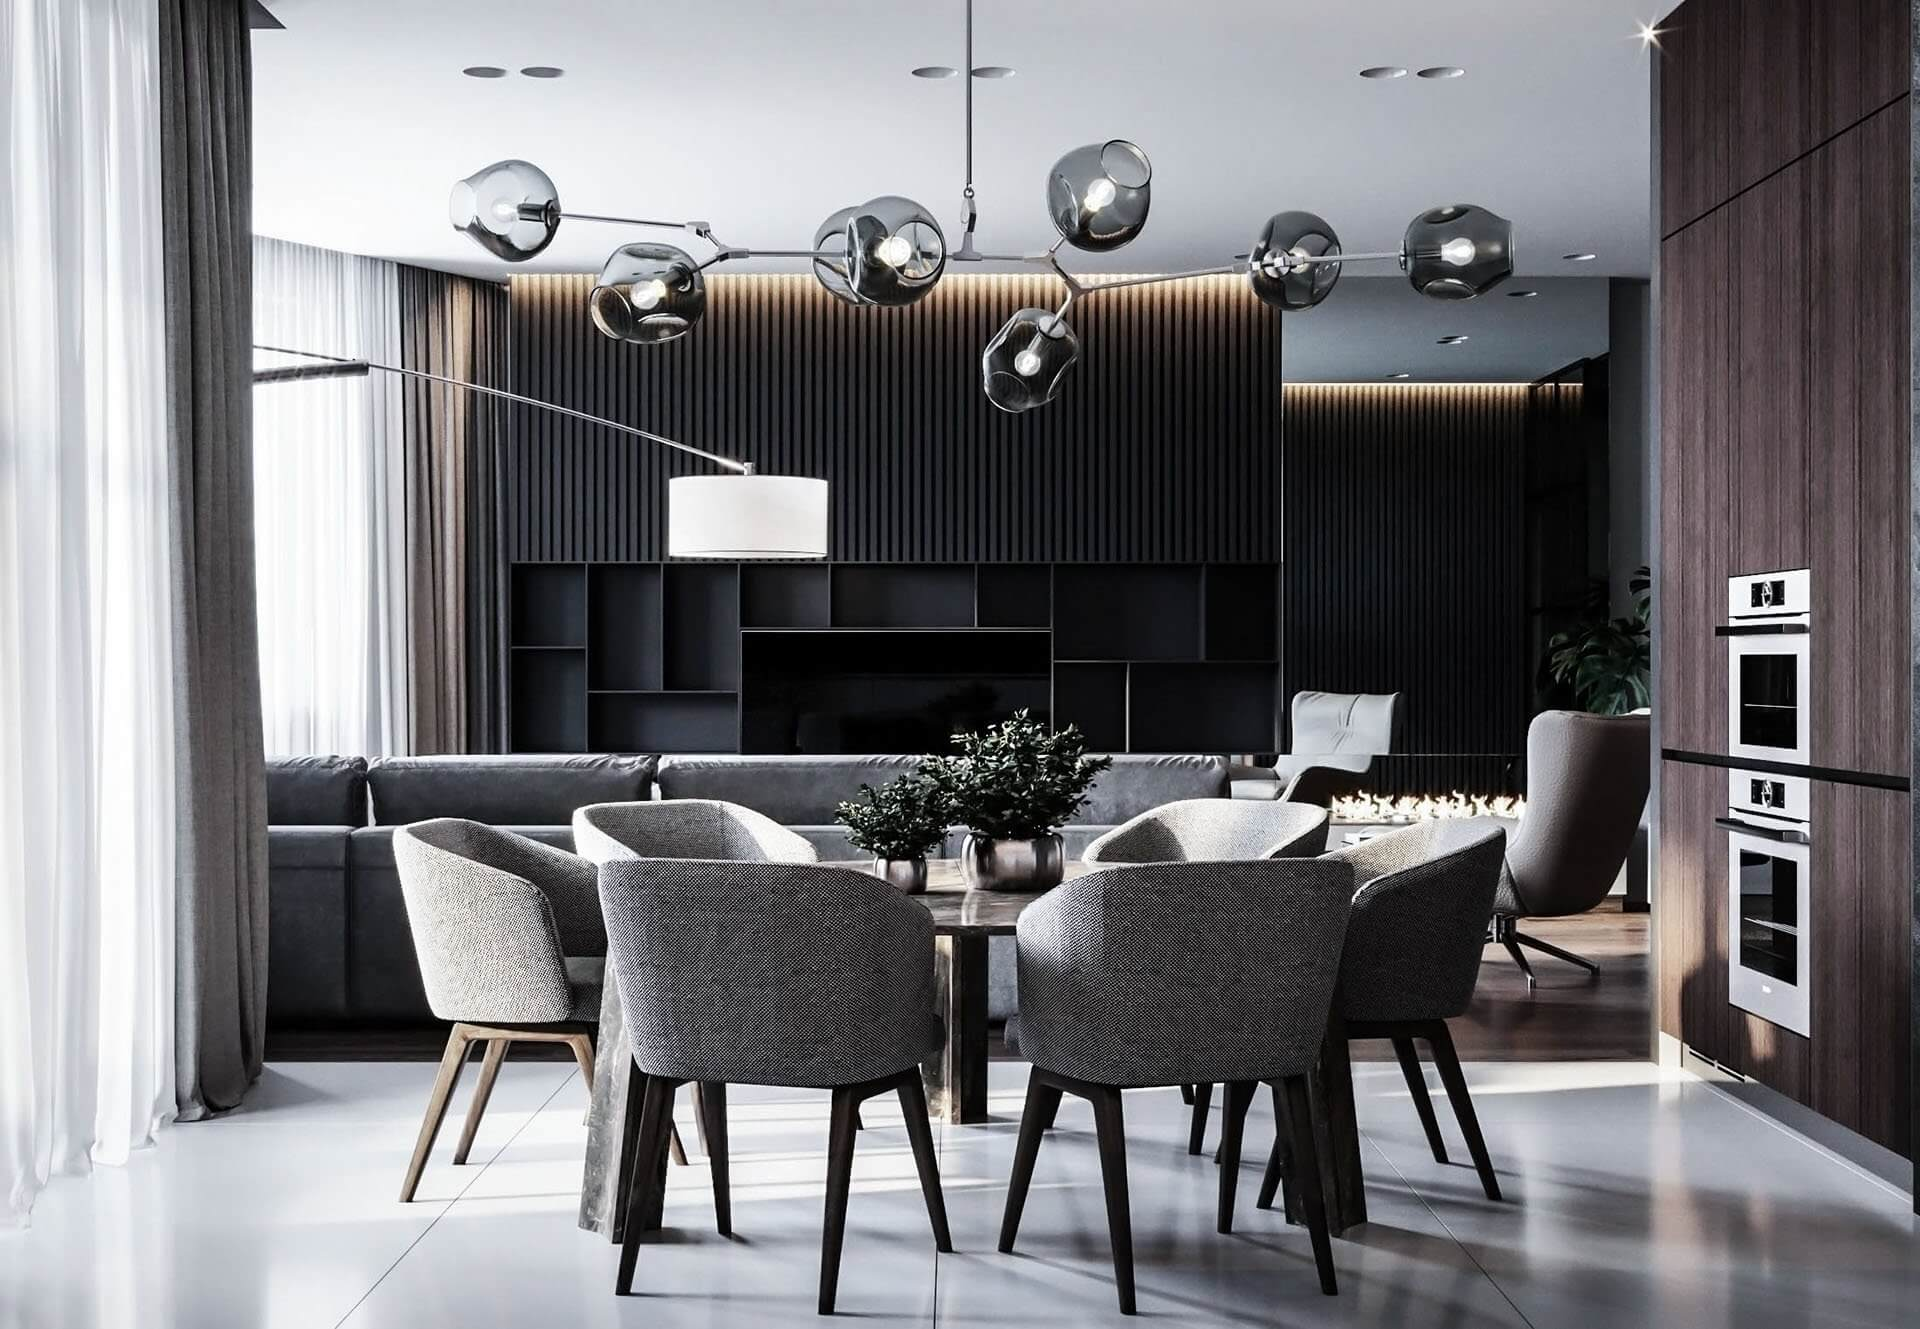 Dubrovka apartment dining room 3 - cgi visualization